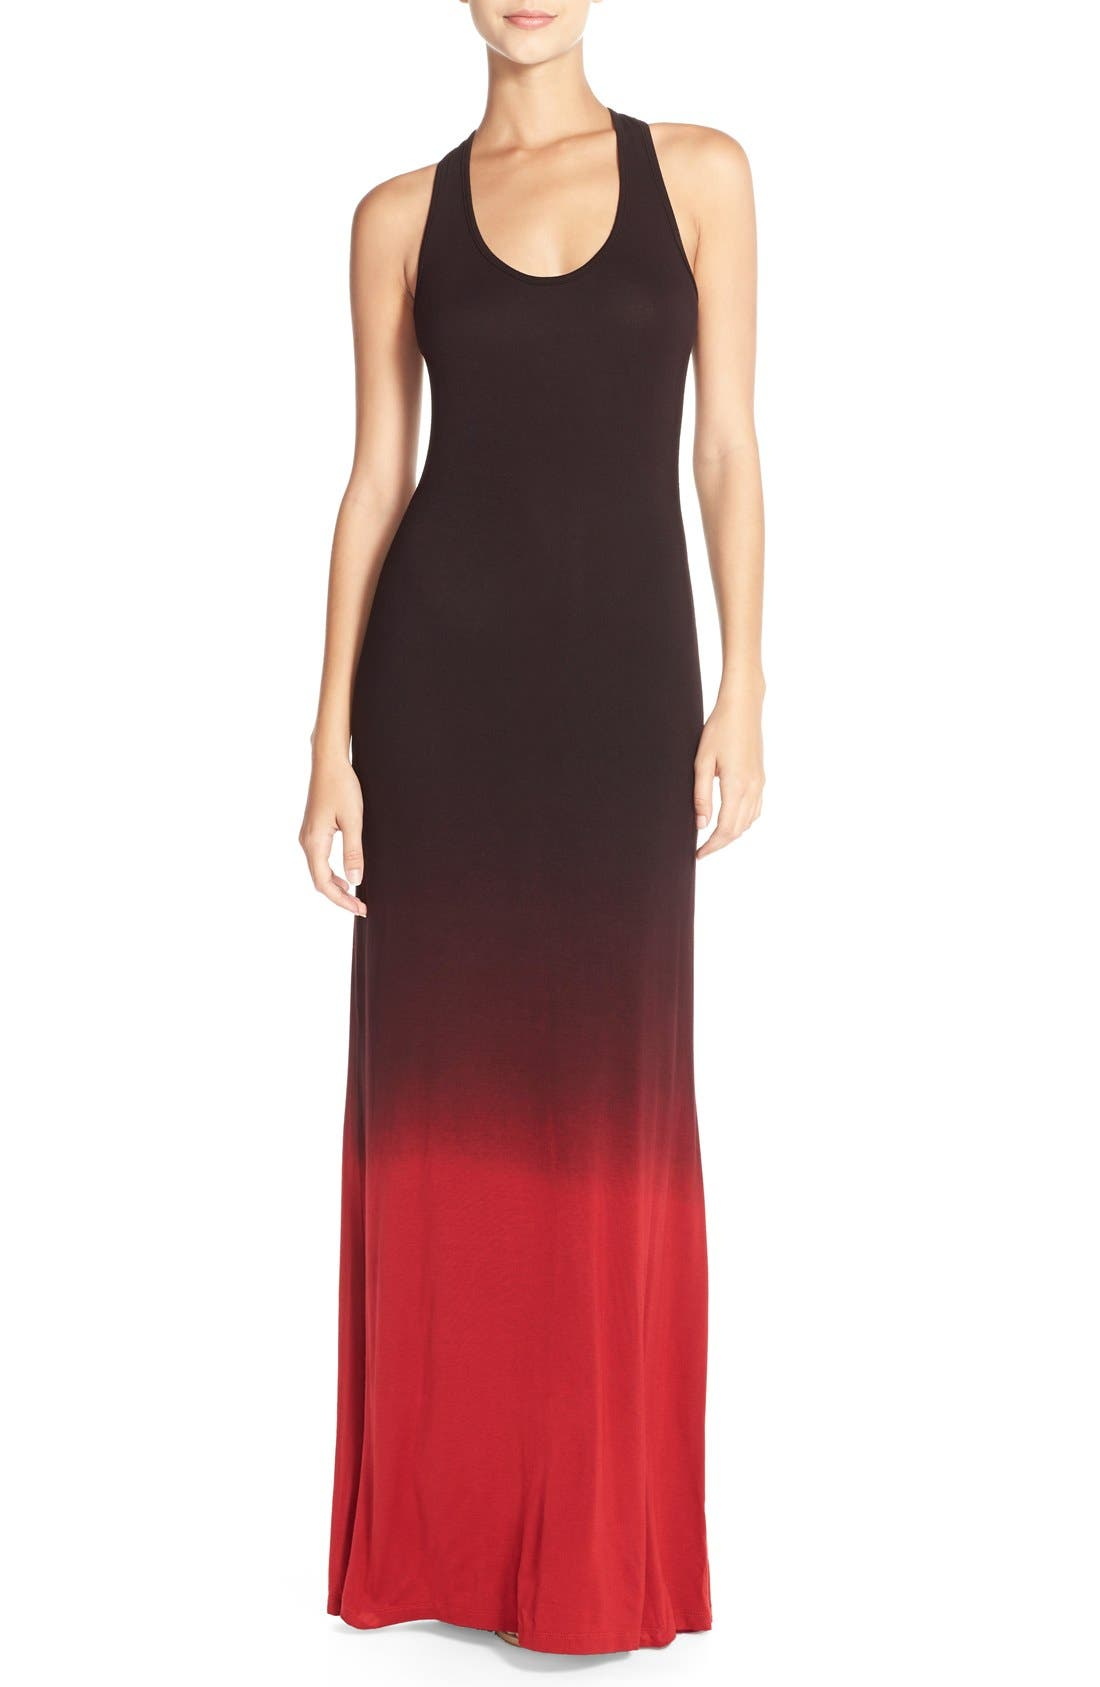 Racerback Maxi Dress,                         Main,                         color, Black/ Red Ombre